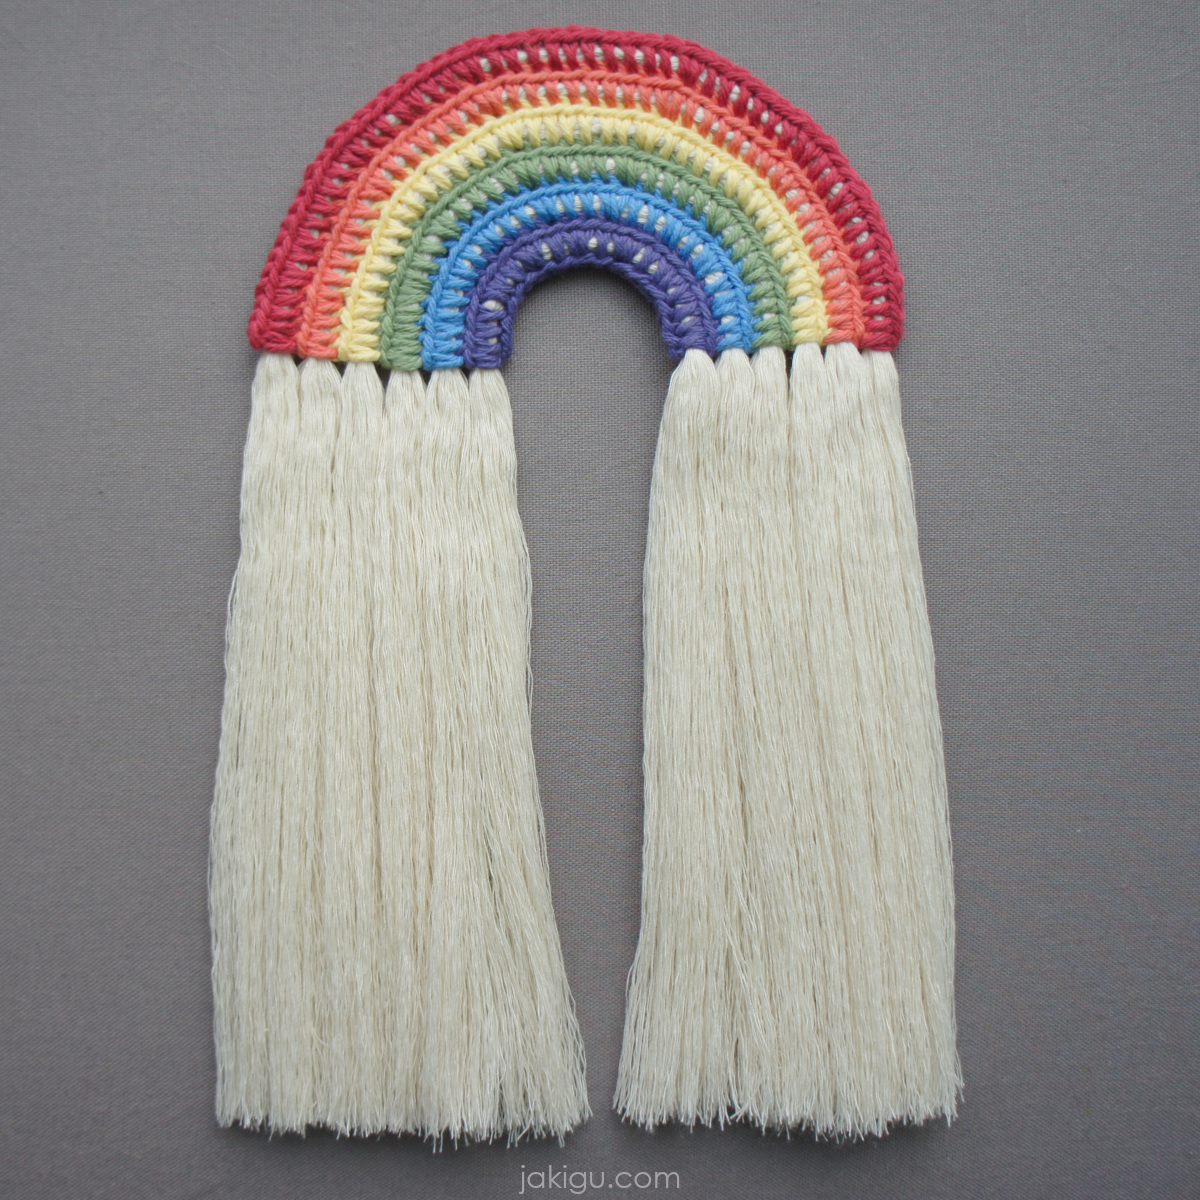 jakigu.com | rainbow wall hanging crochet pattern